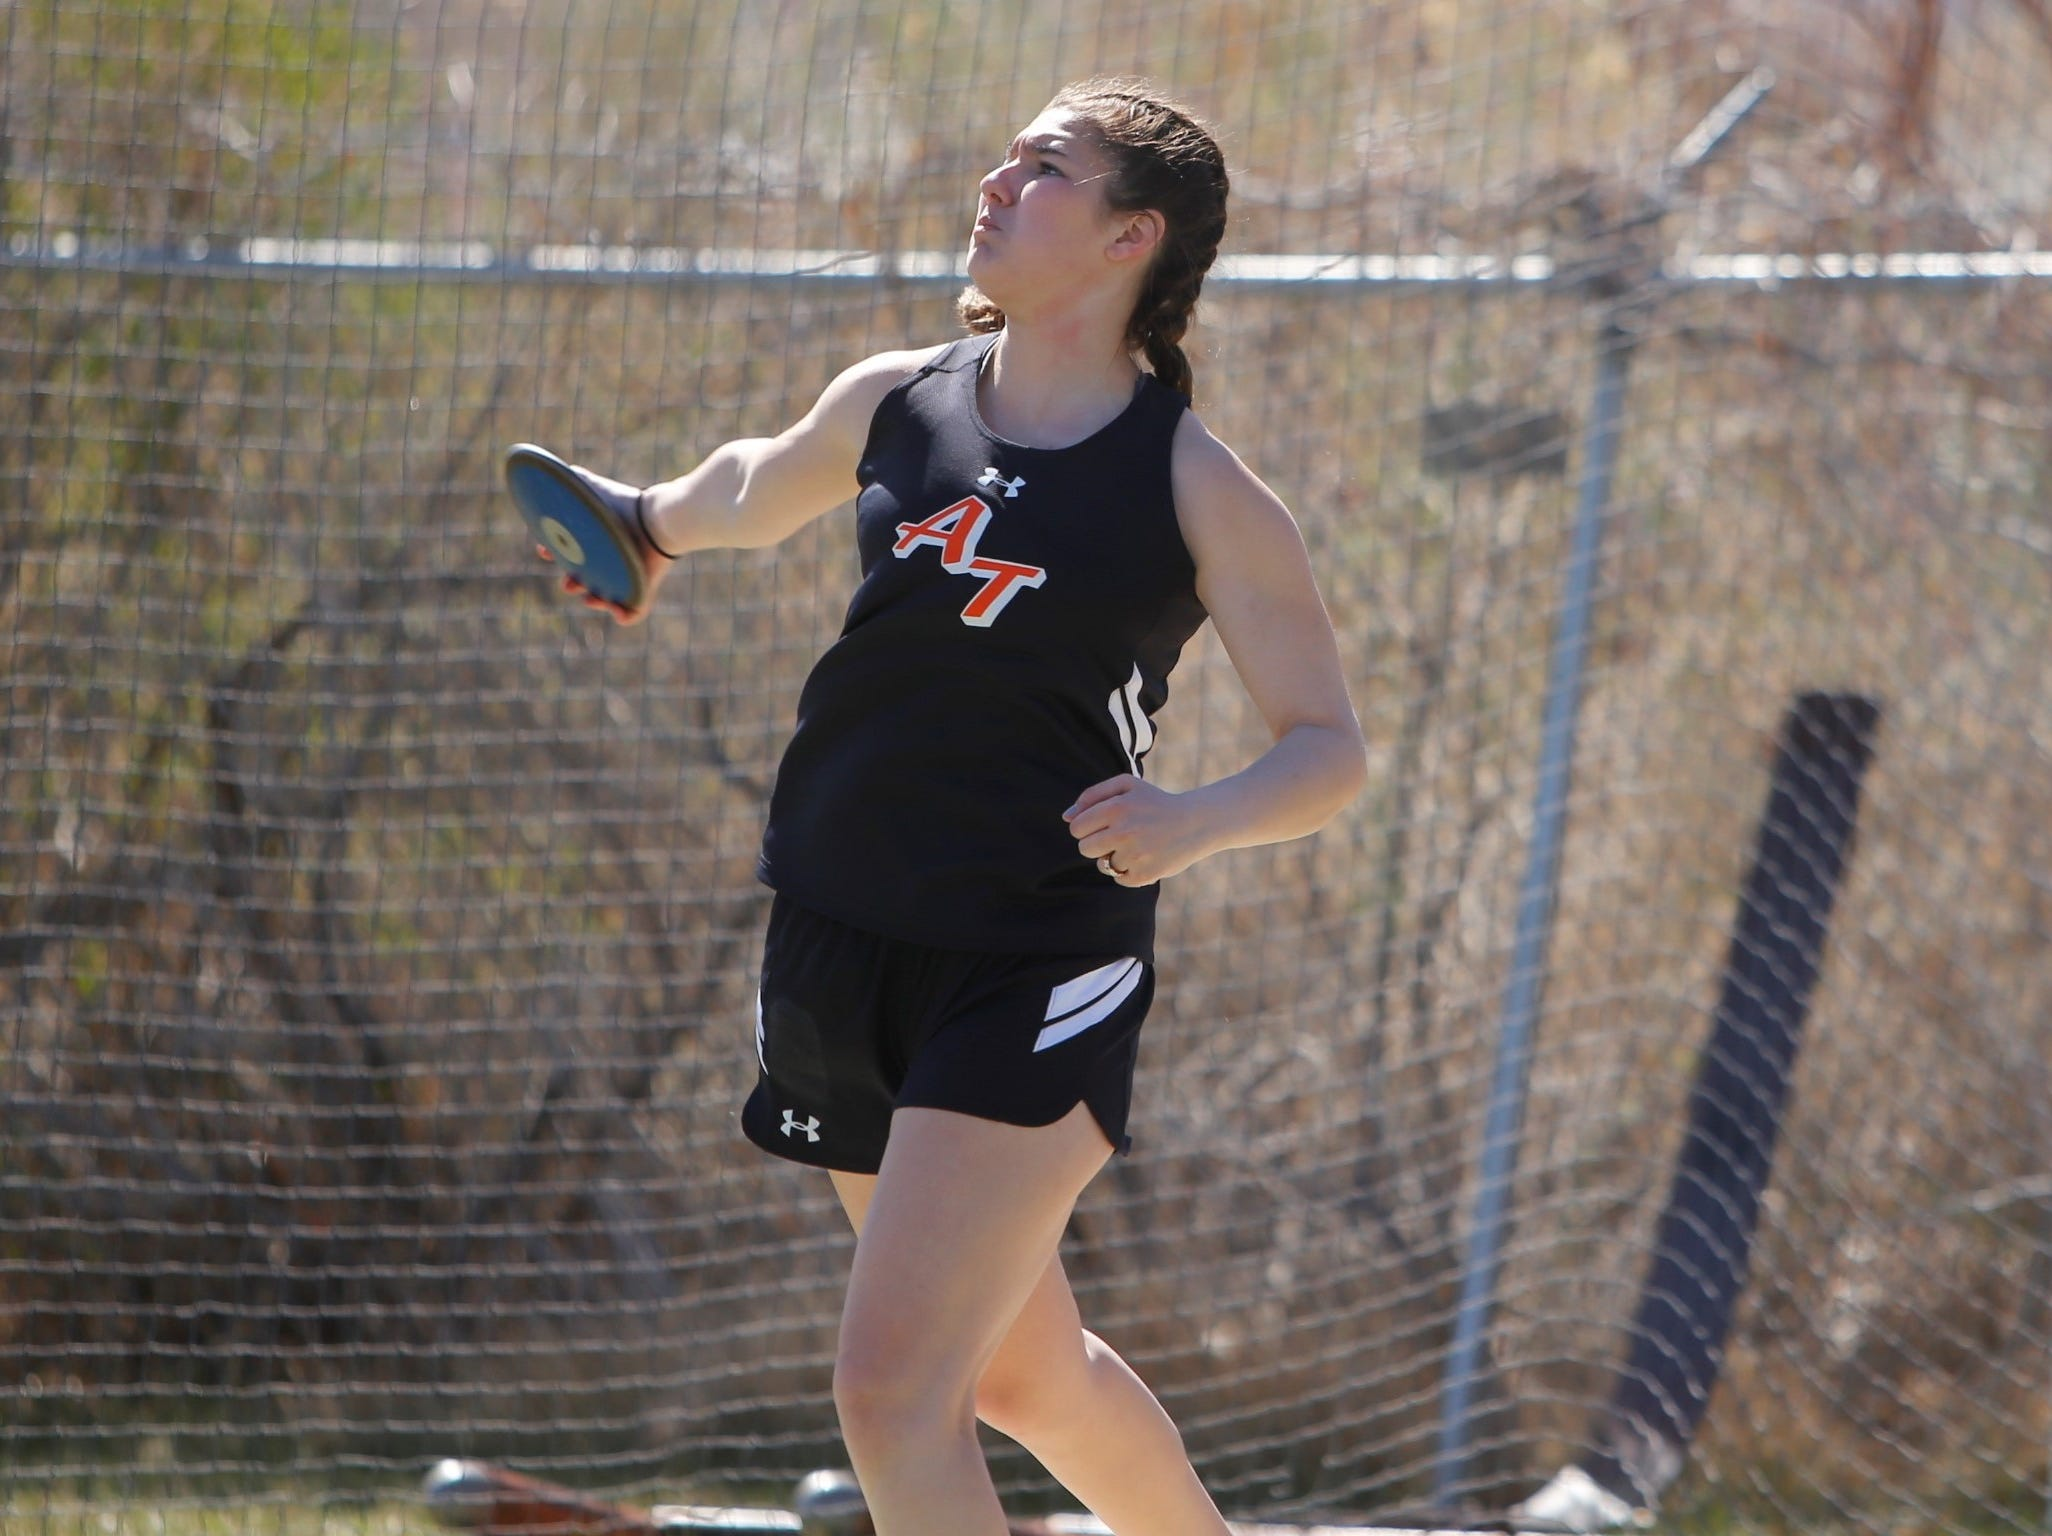 Aztec's Sadie Garcia pivots to throw her discus downfield in the girls discus during Saturday's FHS Invitational at Hutchison Stadium.